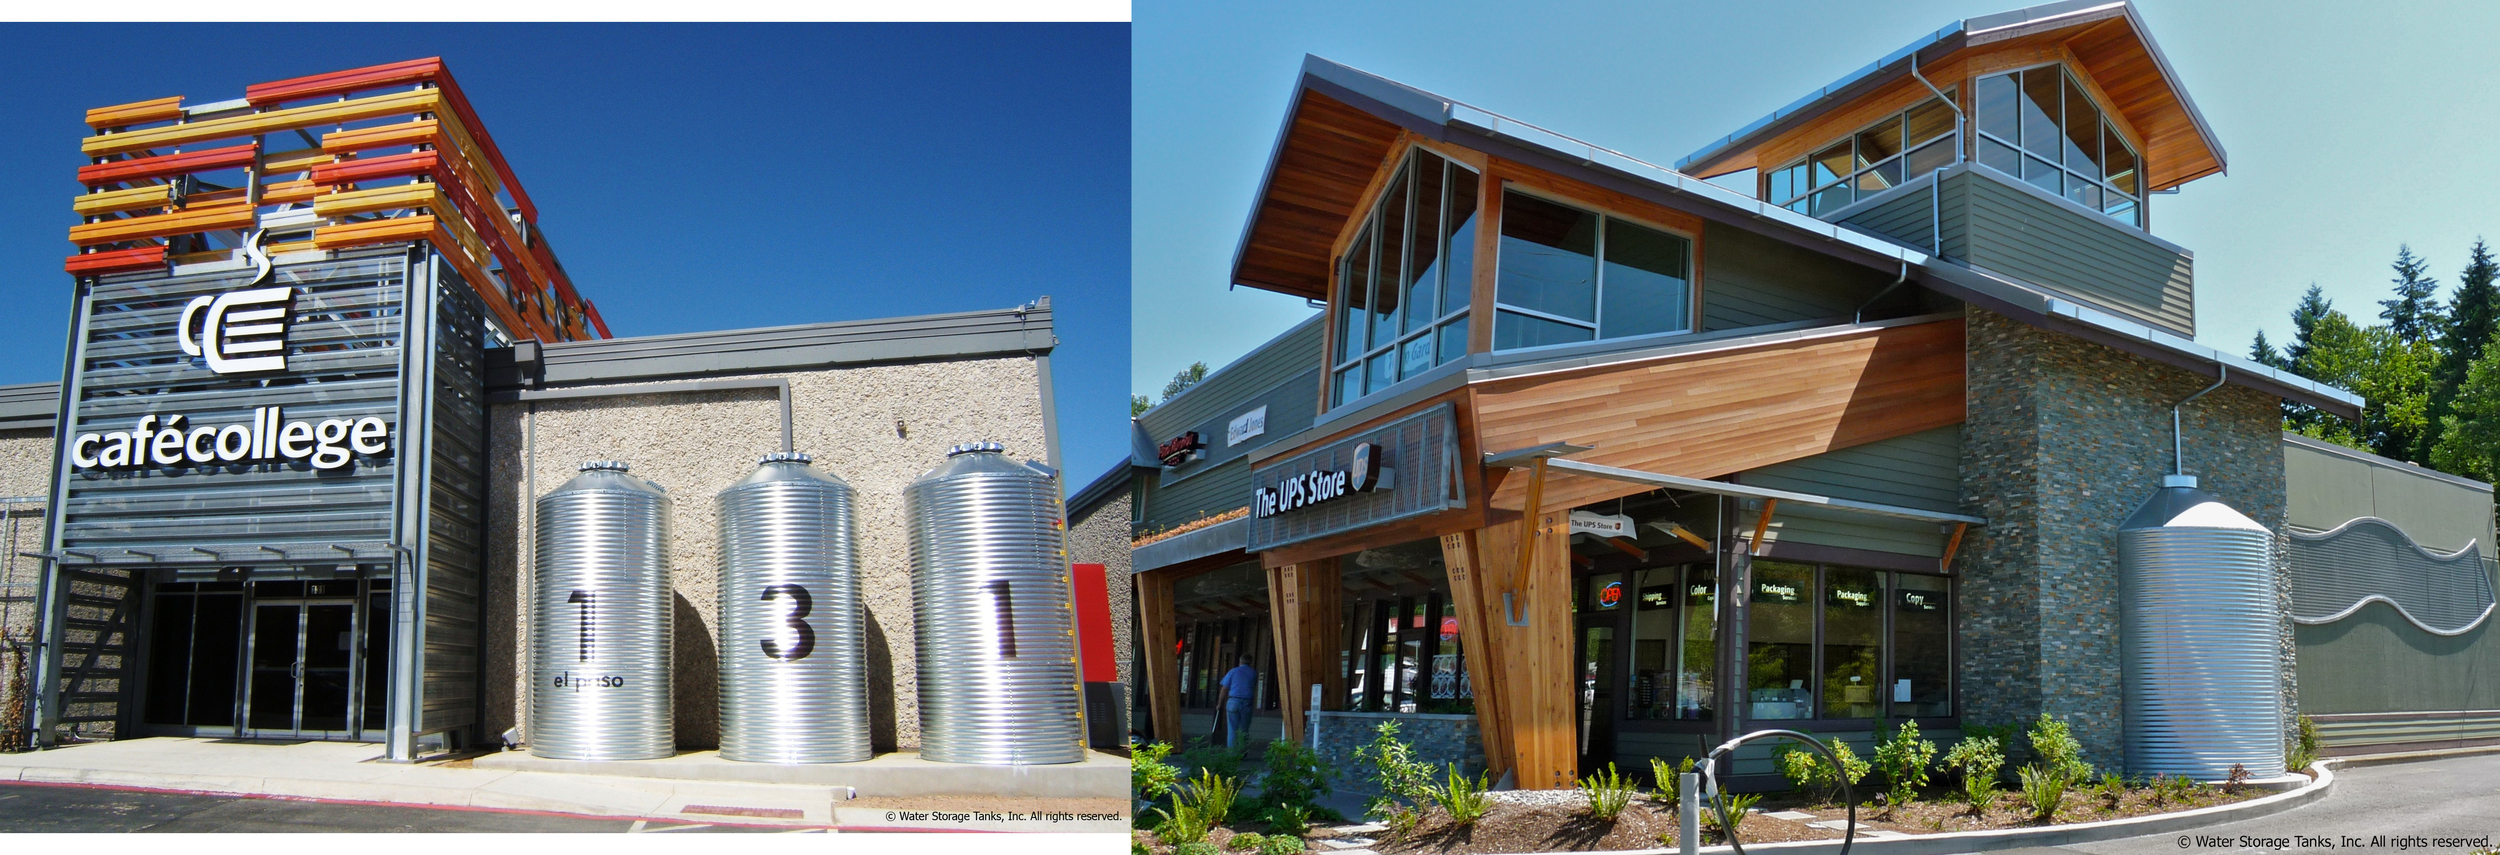 Front of house project applications of CorGal Tanks: Left- Cafe College, San Antonio, Tx. Right- UPS Store, Snohomish, WA.